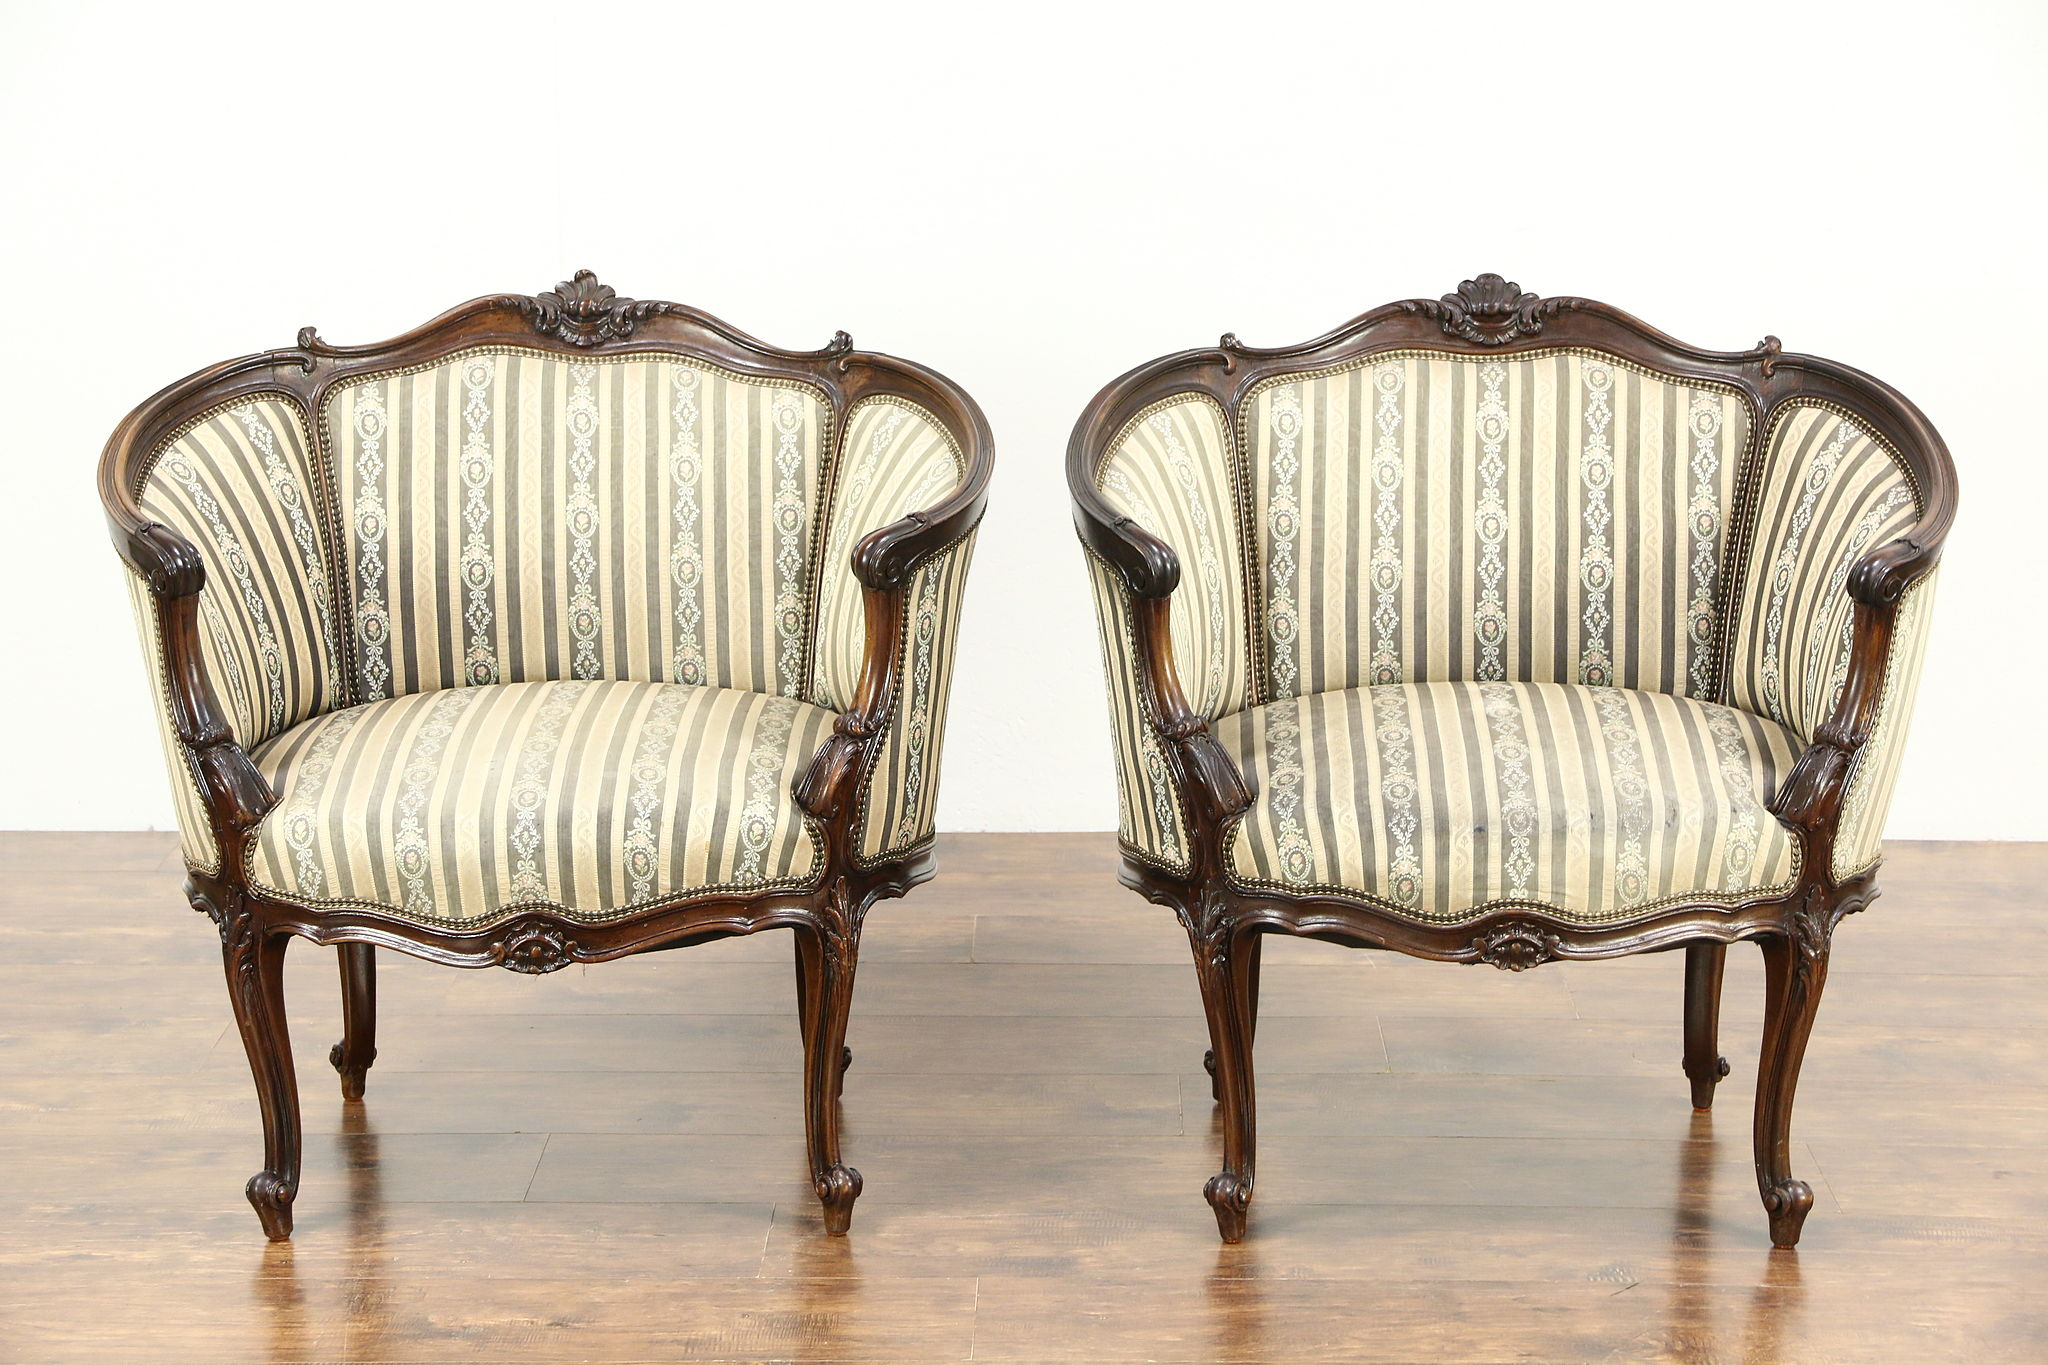 Merveilleux Pair Of French Louis XIV Hand Carved Walnut 1920 Antique Salon Chairs